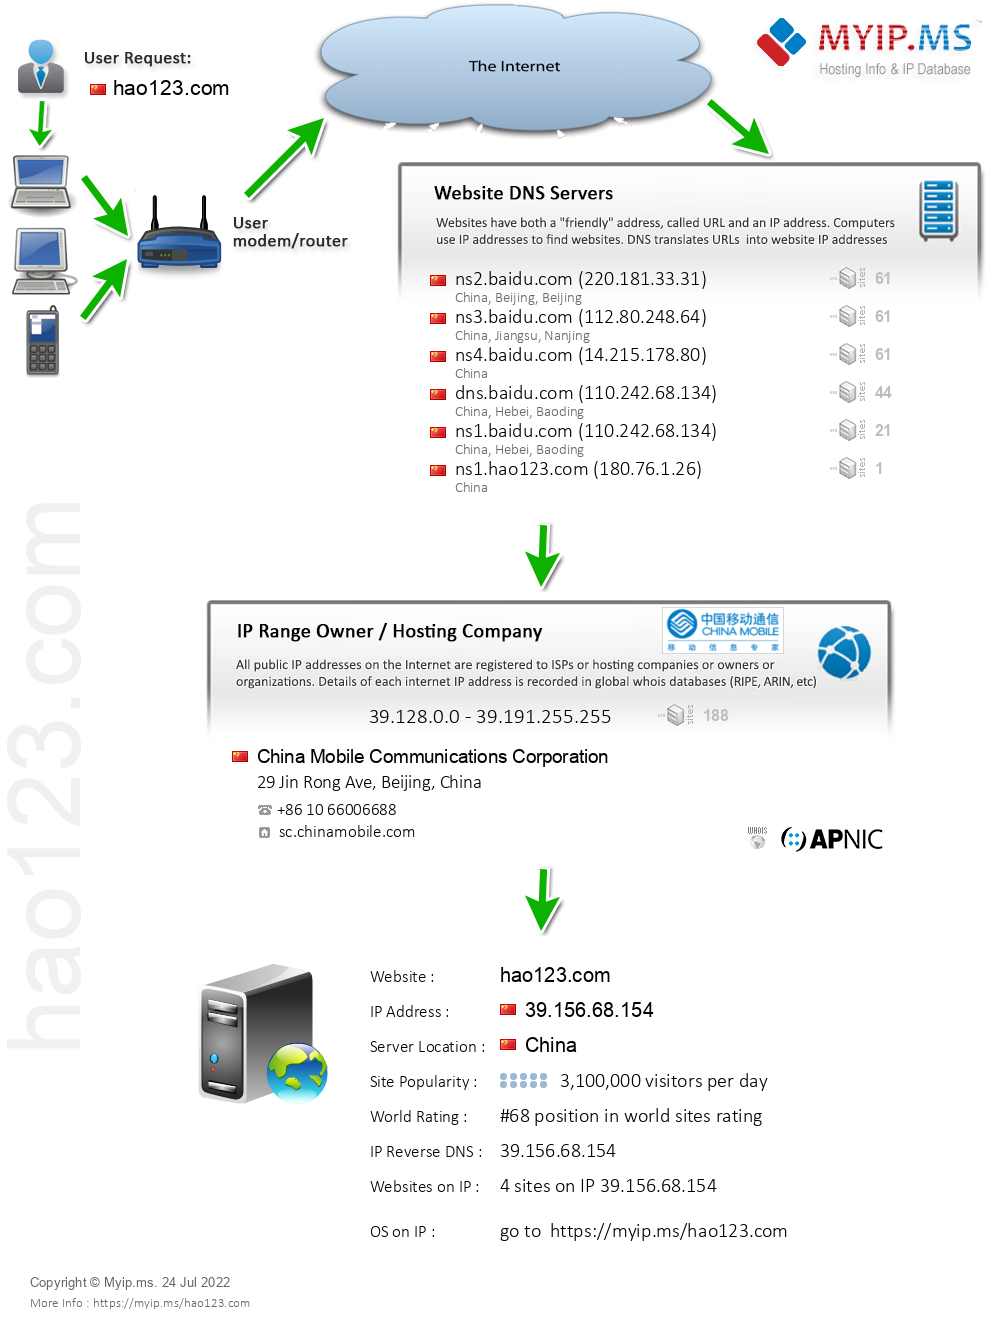 Hao123.com - Website Hosting Visual IP Diagram